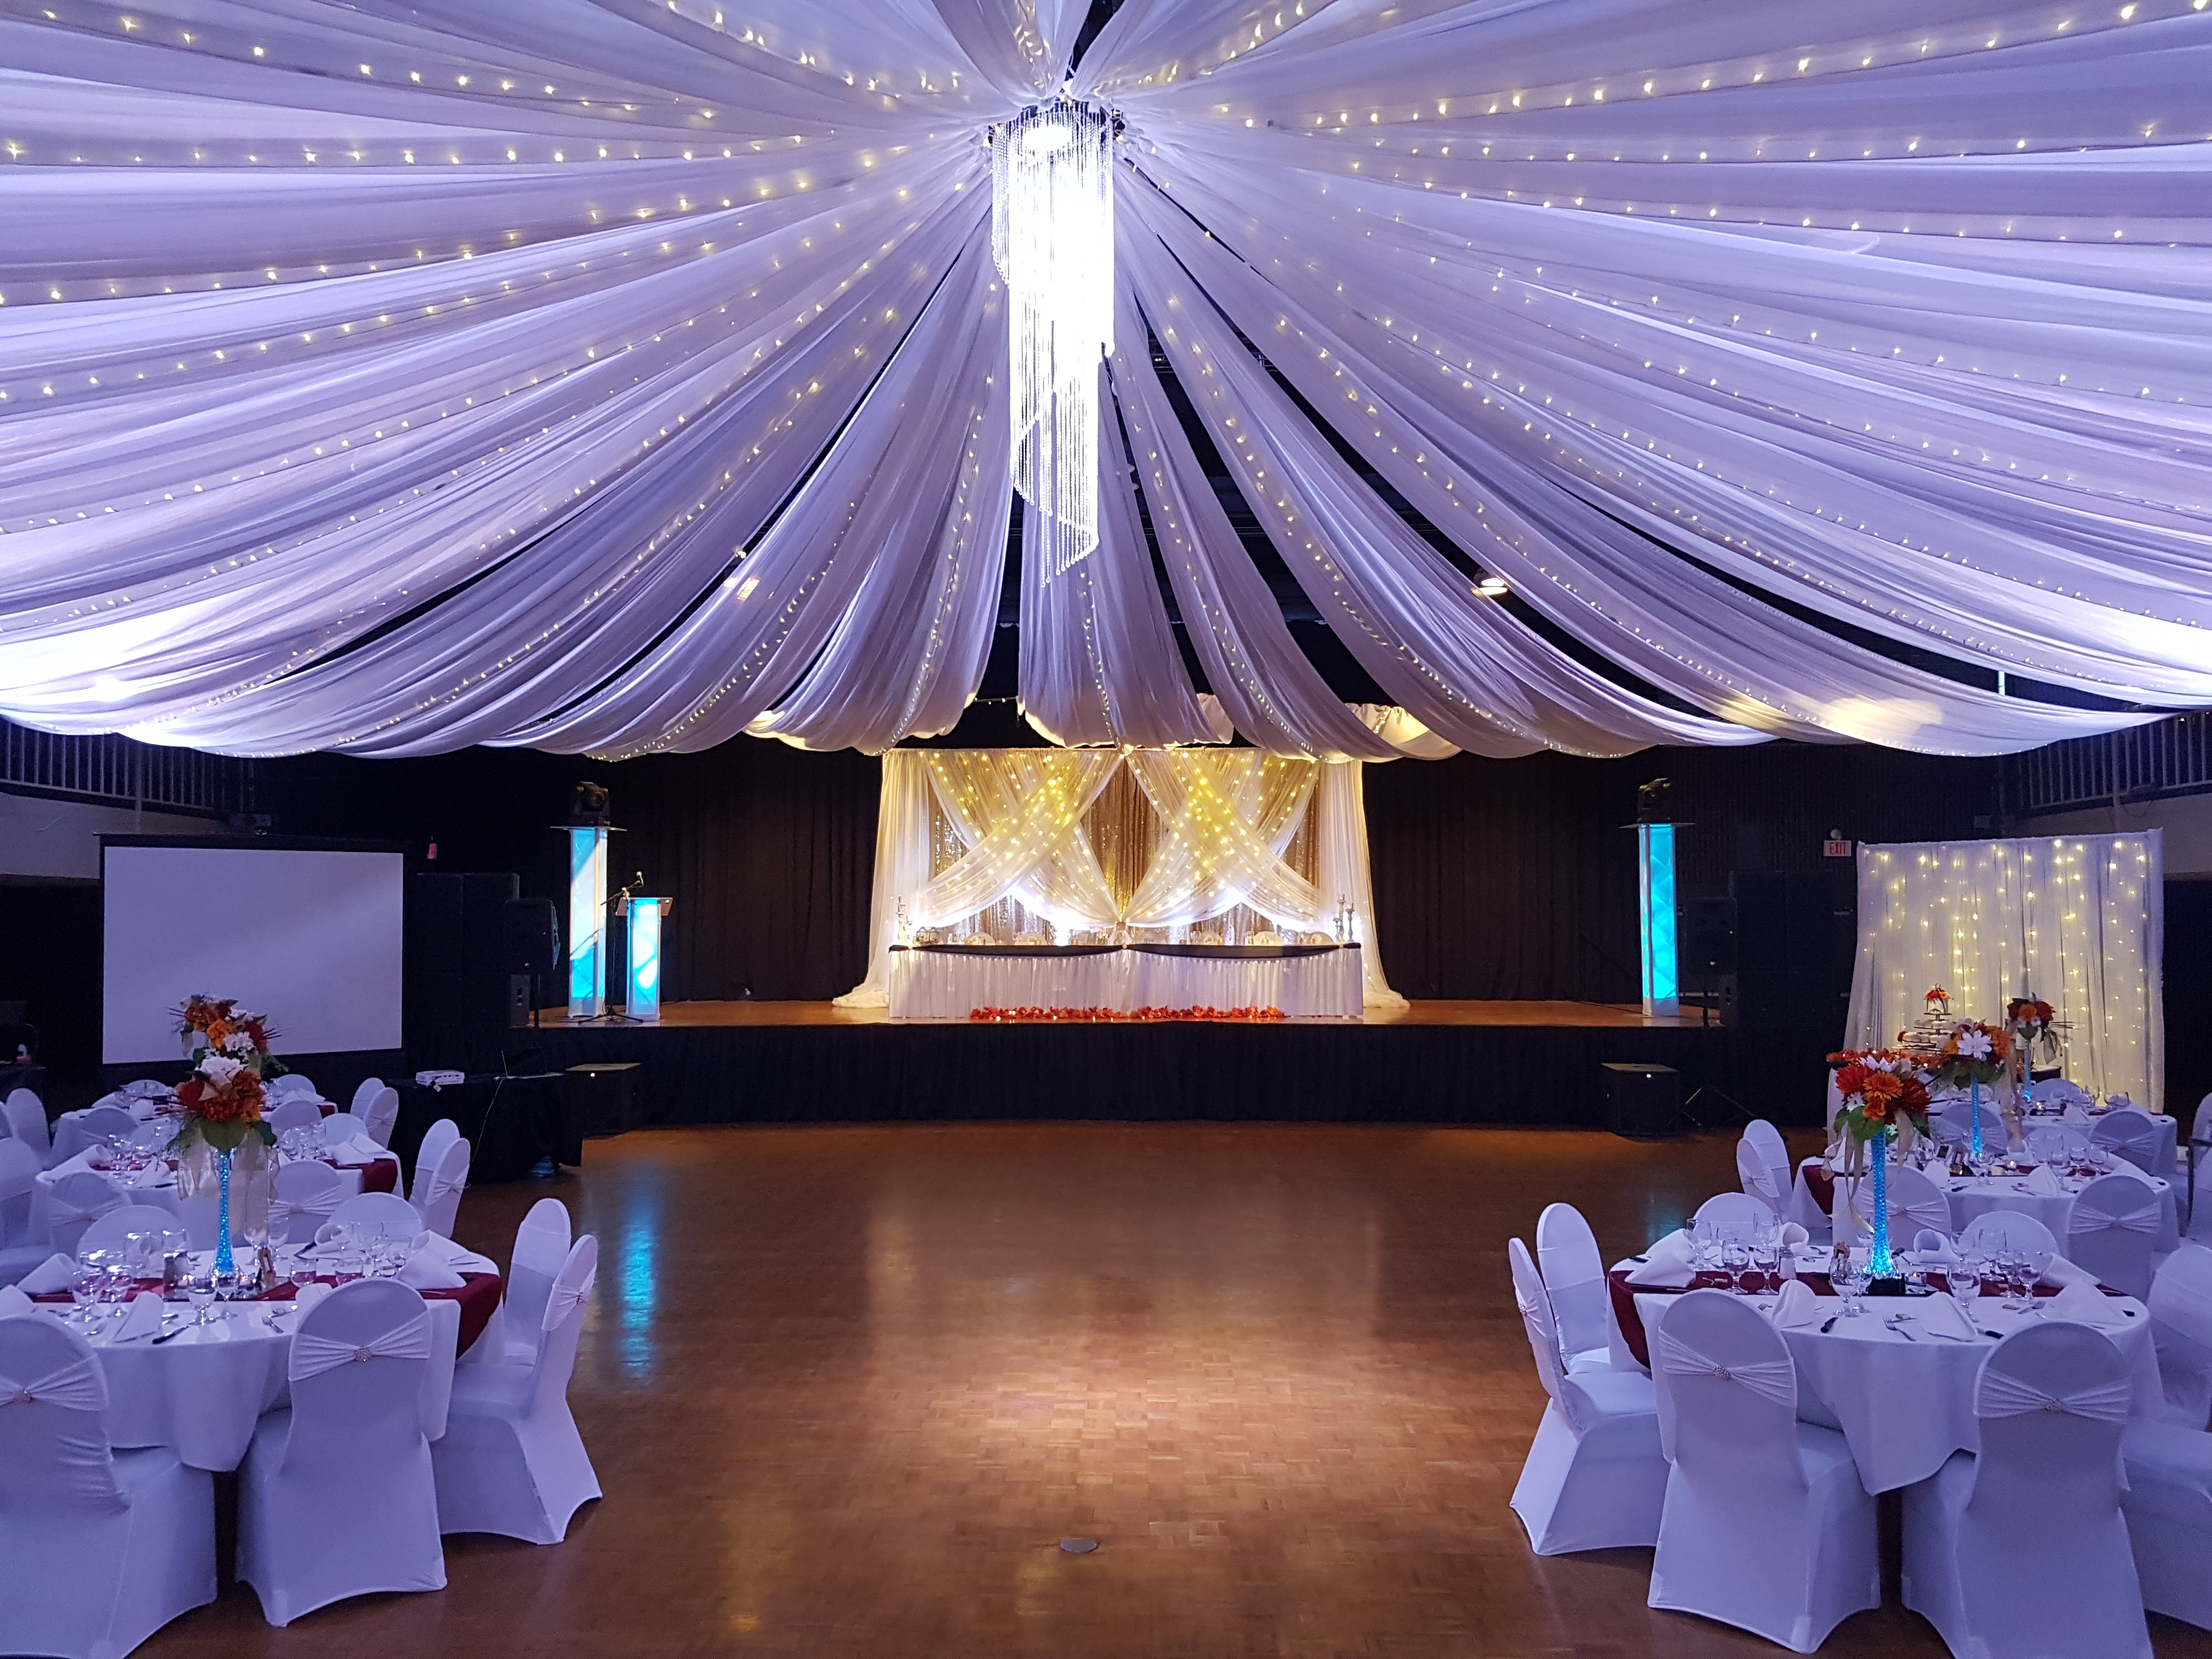 Beautiful Turvey Center up lit in blue for a wedding